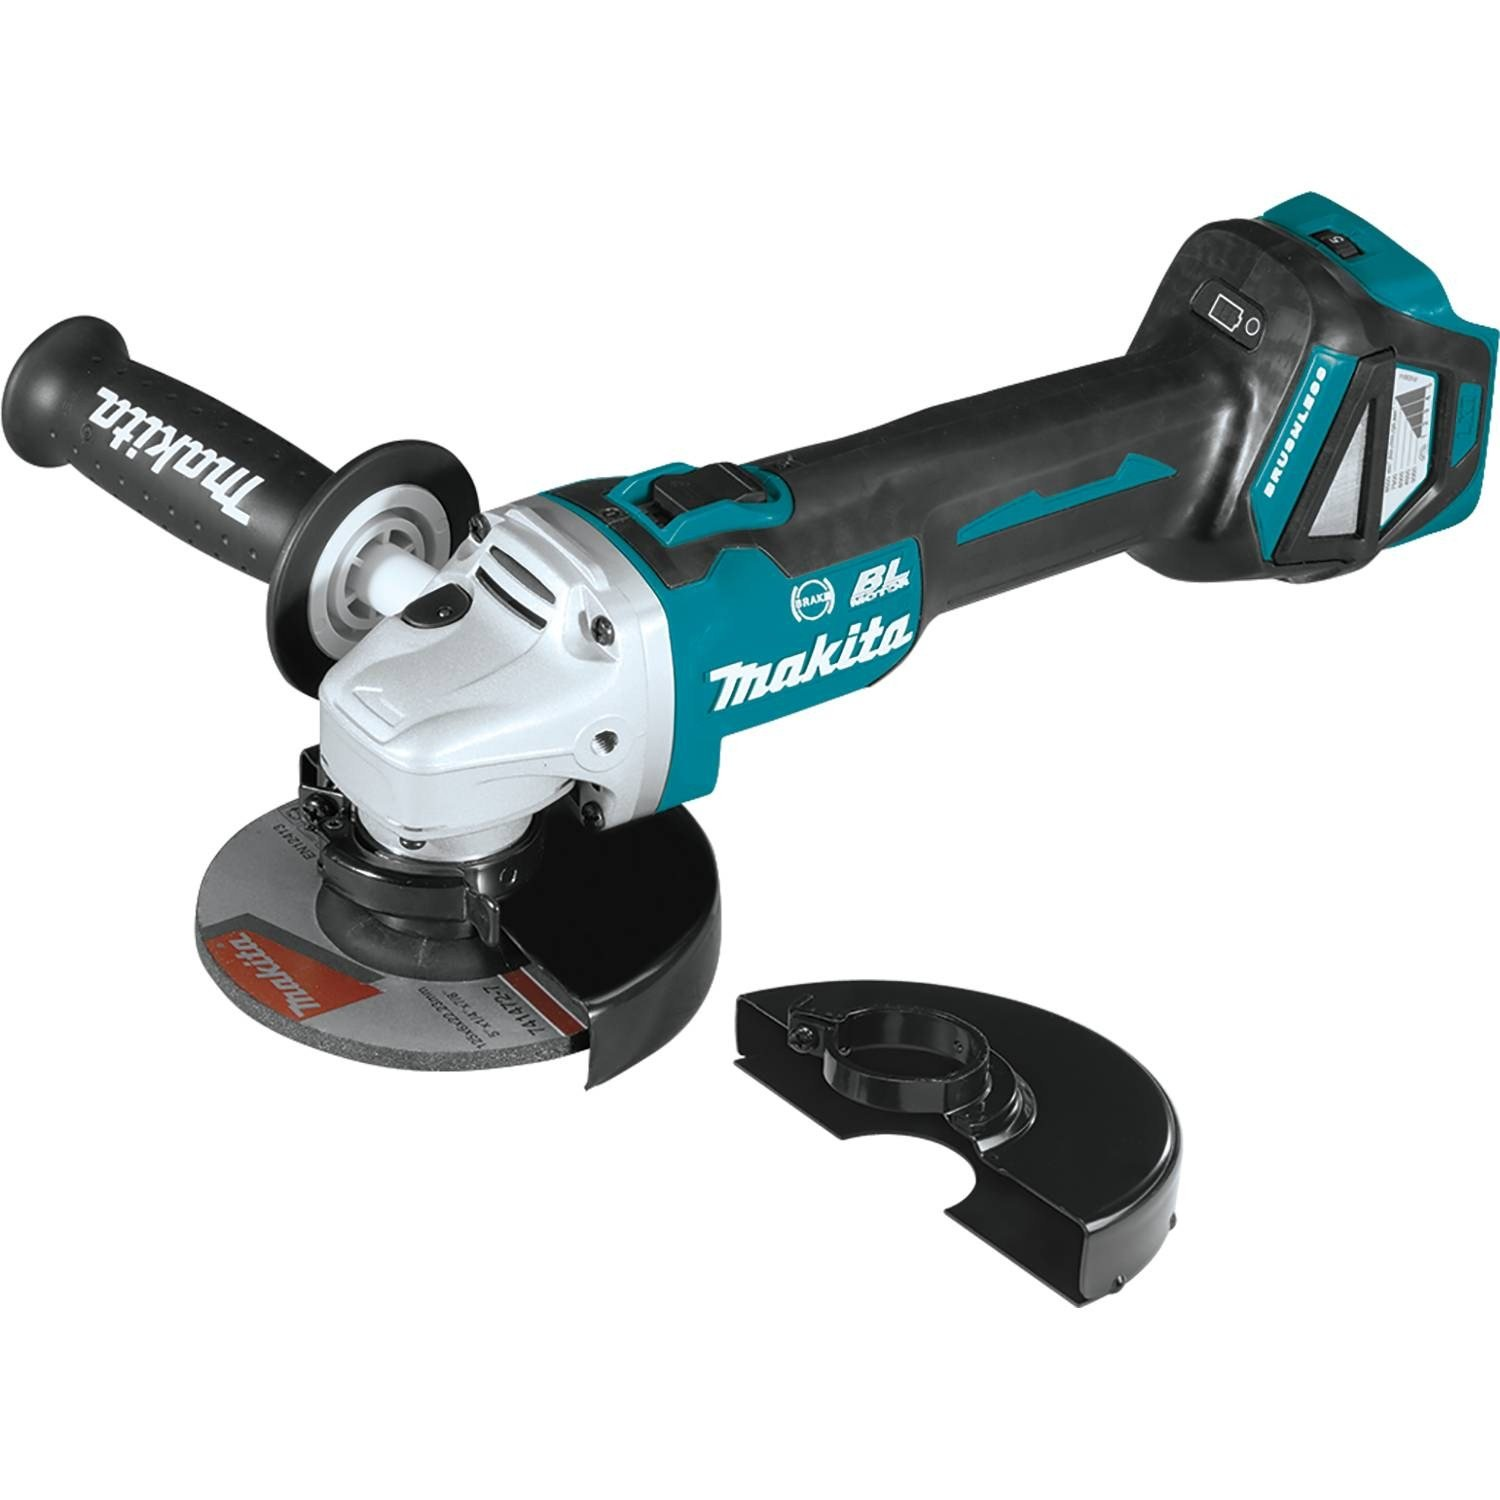 "Makita XAG17ZU 18V LXT Lithium-Ion Brushless Cordless 4-1/2""/ 5"" Cut-Off/Angle Grinder, with Electric Brake & Aws, Tool Only"